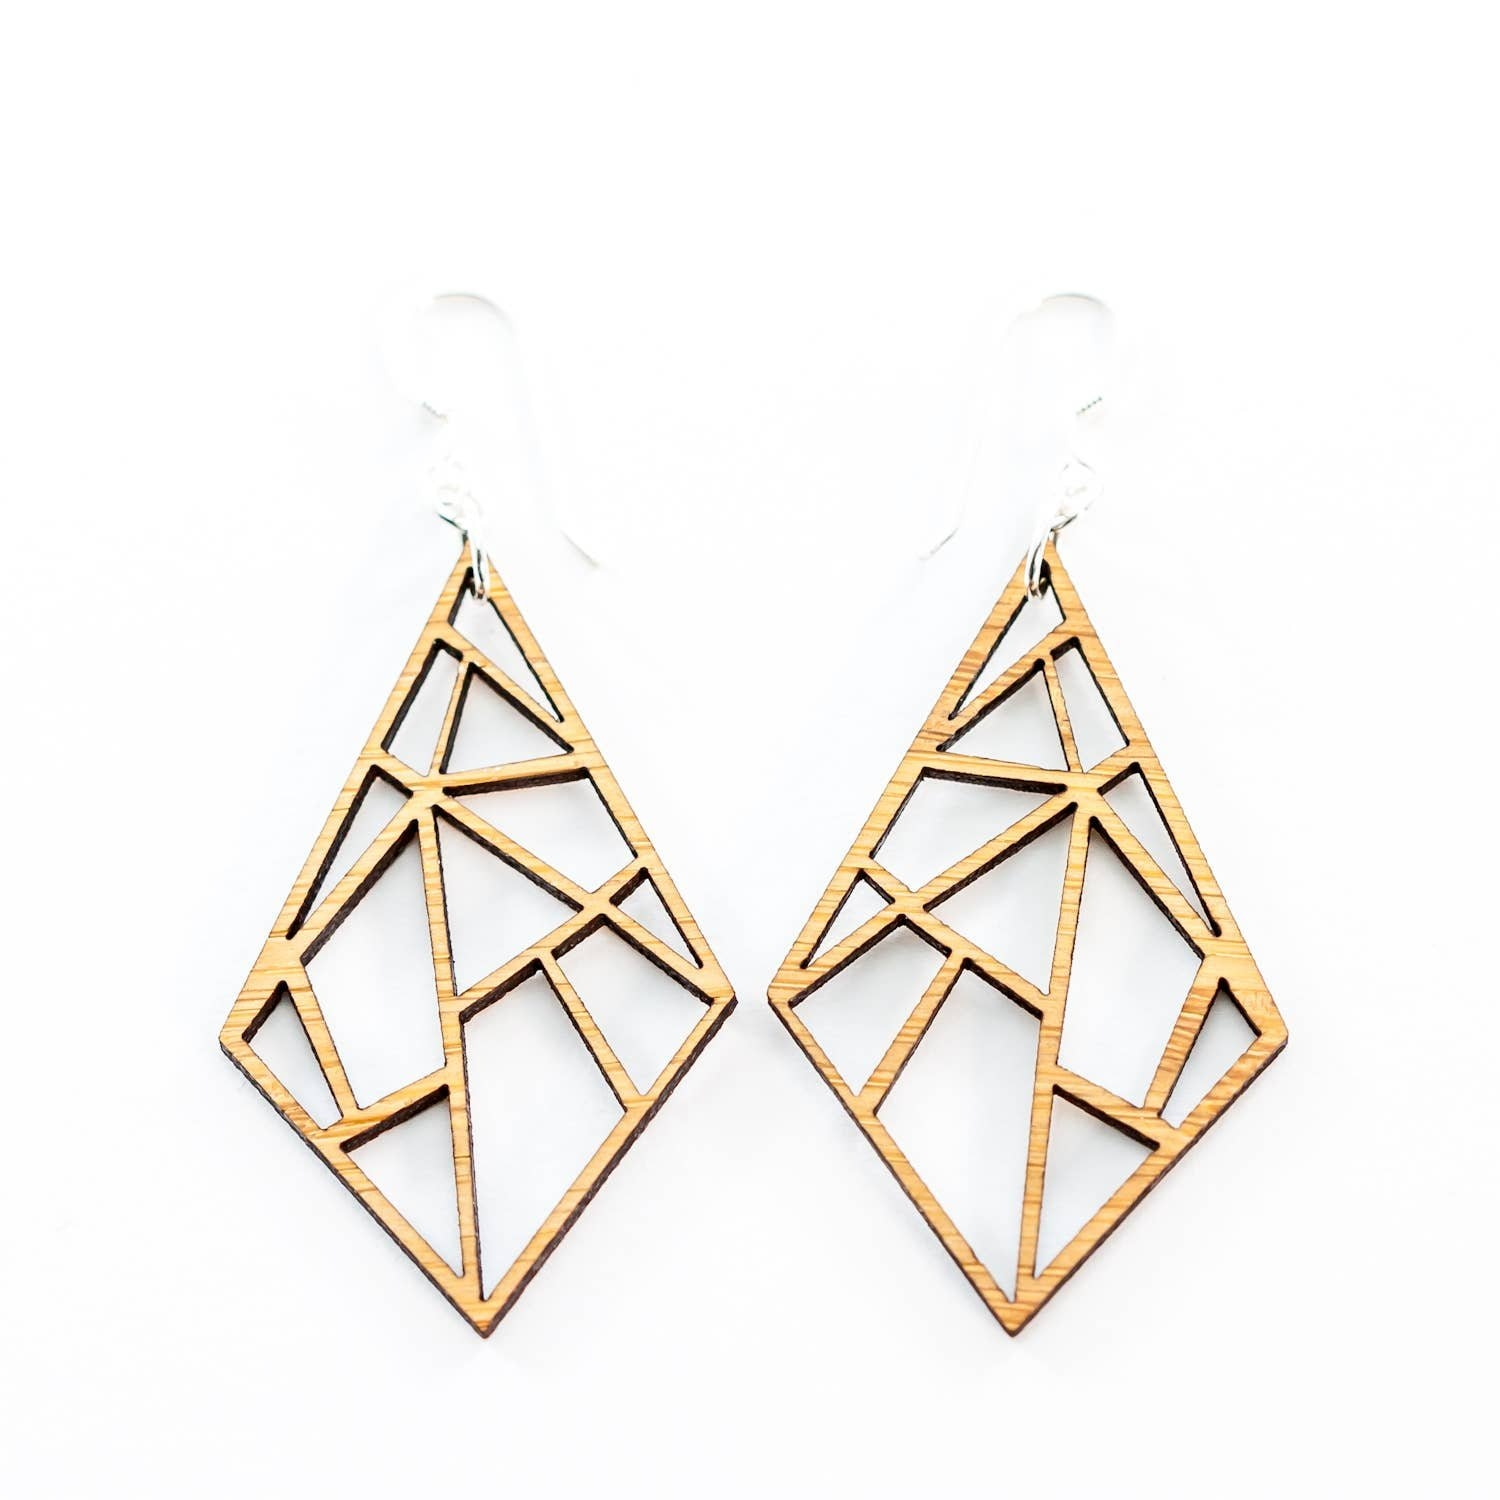 LeeMo Bamboo Diamond Earrings